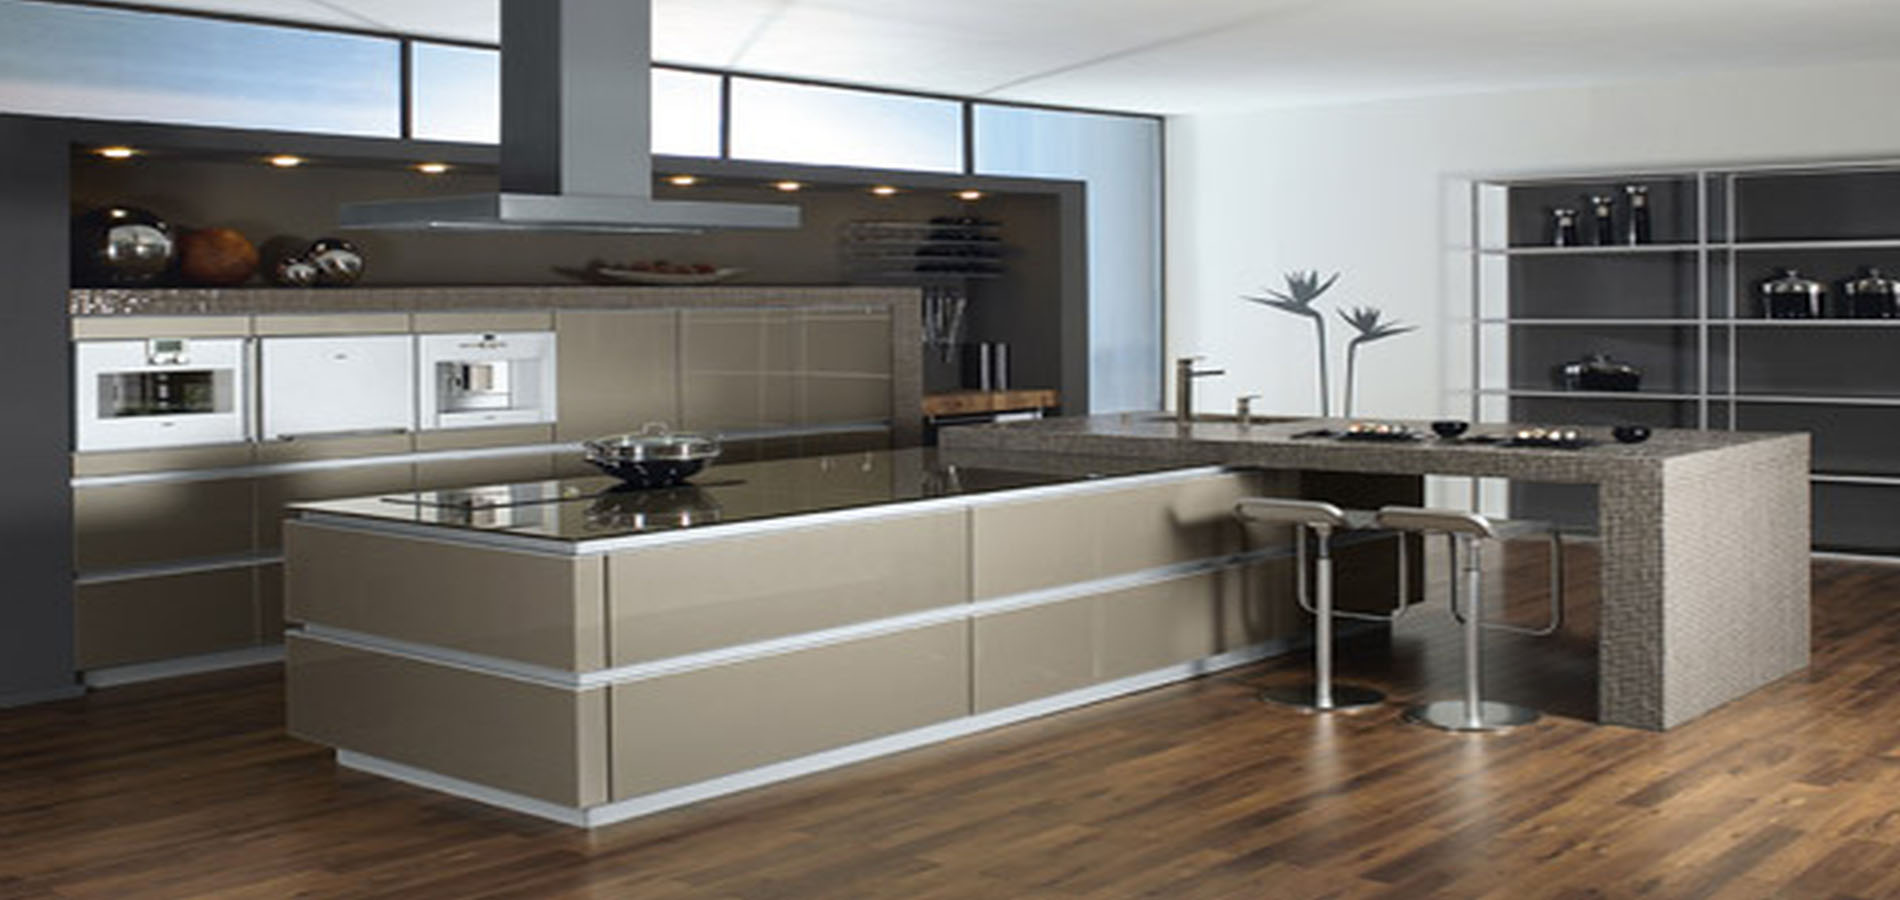 Cheap kitchen cabinet malaysia great design functional for Kitchen design lebanon